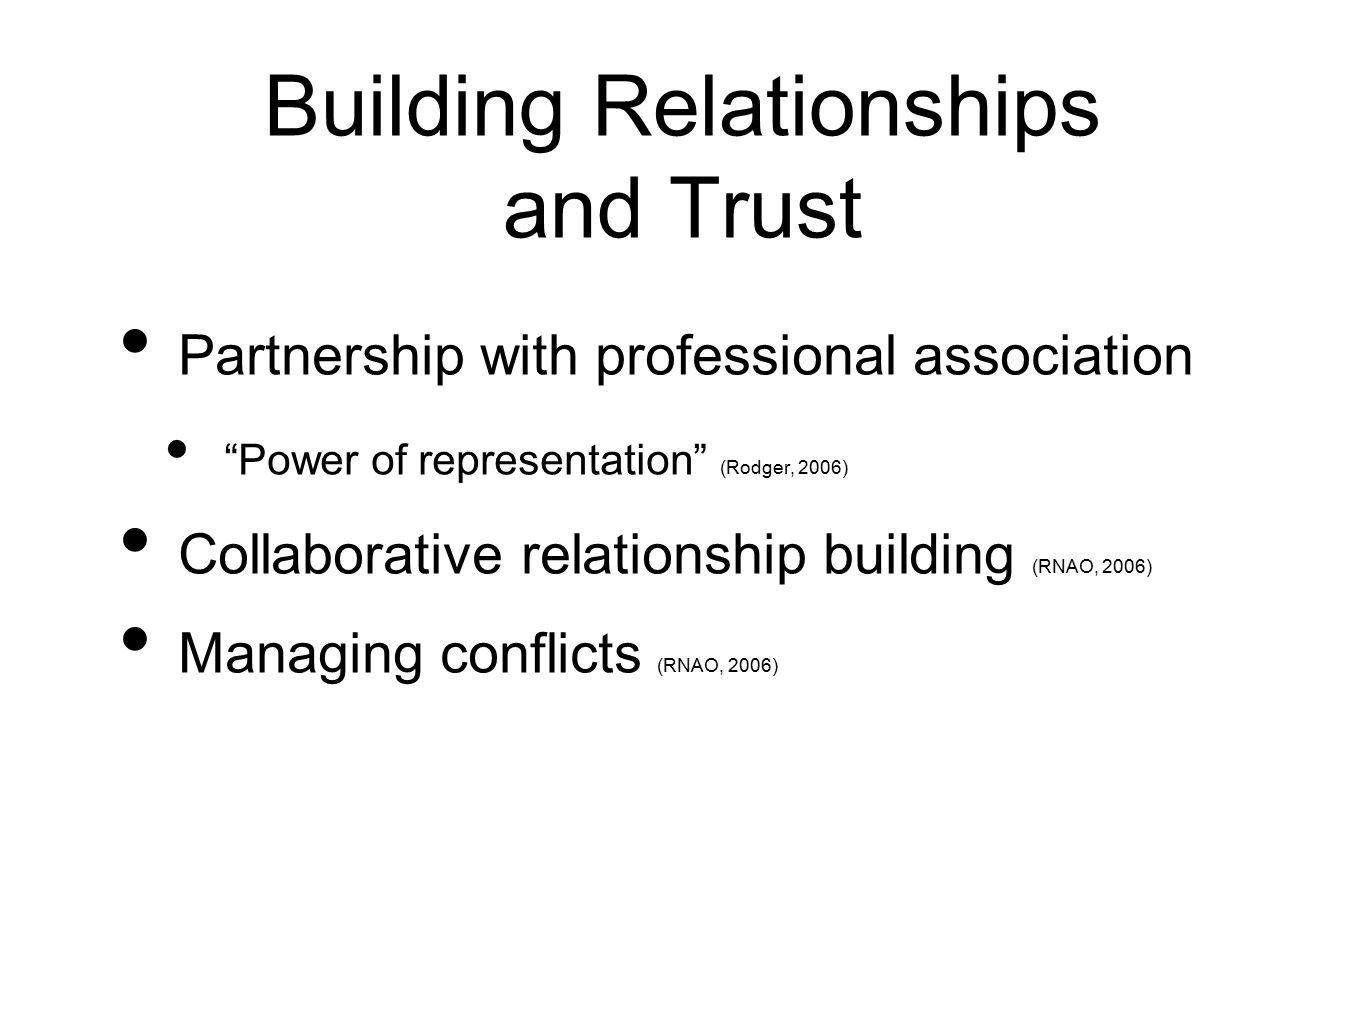 Building Relationships and Trust Partnership with professional association Power of representation (Rodger, 2006) Collaborative relationship building (RNAO, 2006) Managing conflicts (RNAO, 2006)